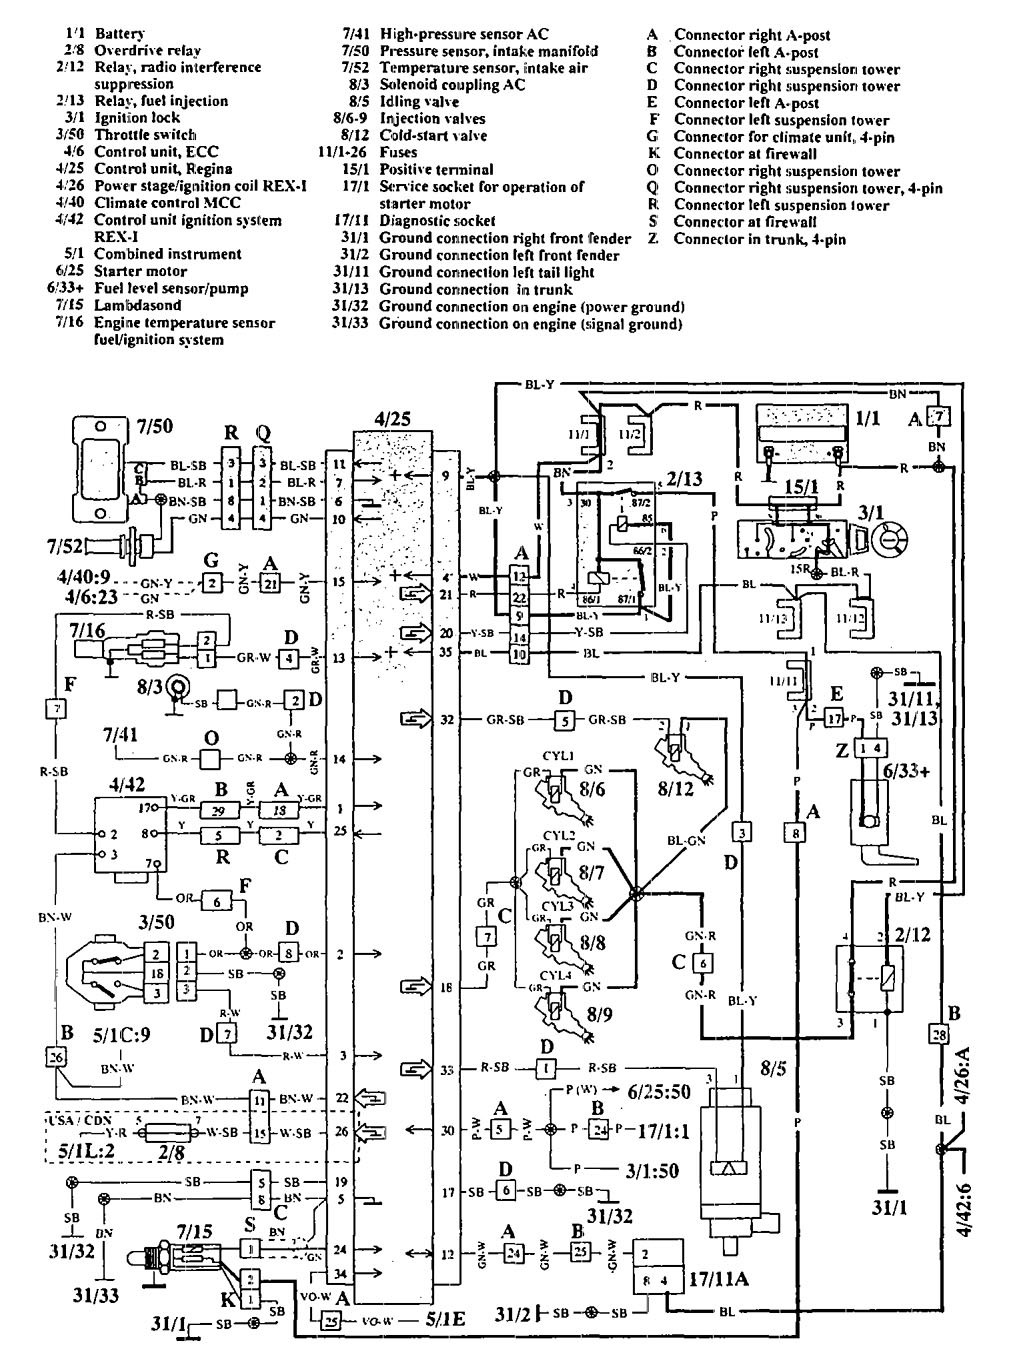 Volvo 960 Radio Wiring Diagram Schematic Diagrams Fl6 Diy Enthusiasts 1994 Stereo Trusted Schematics 940 Custom